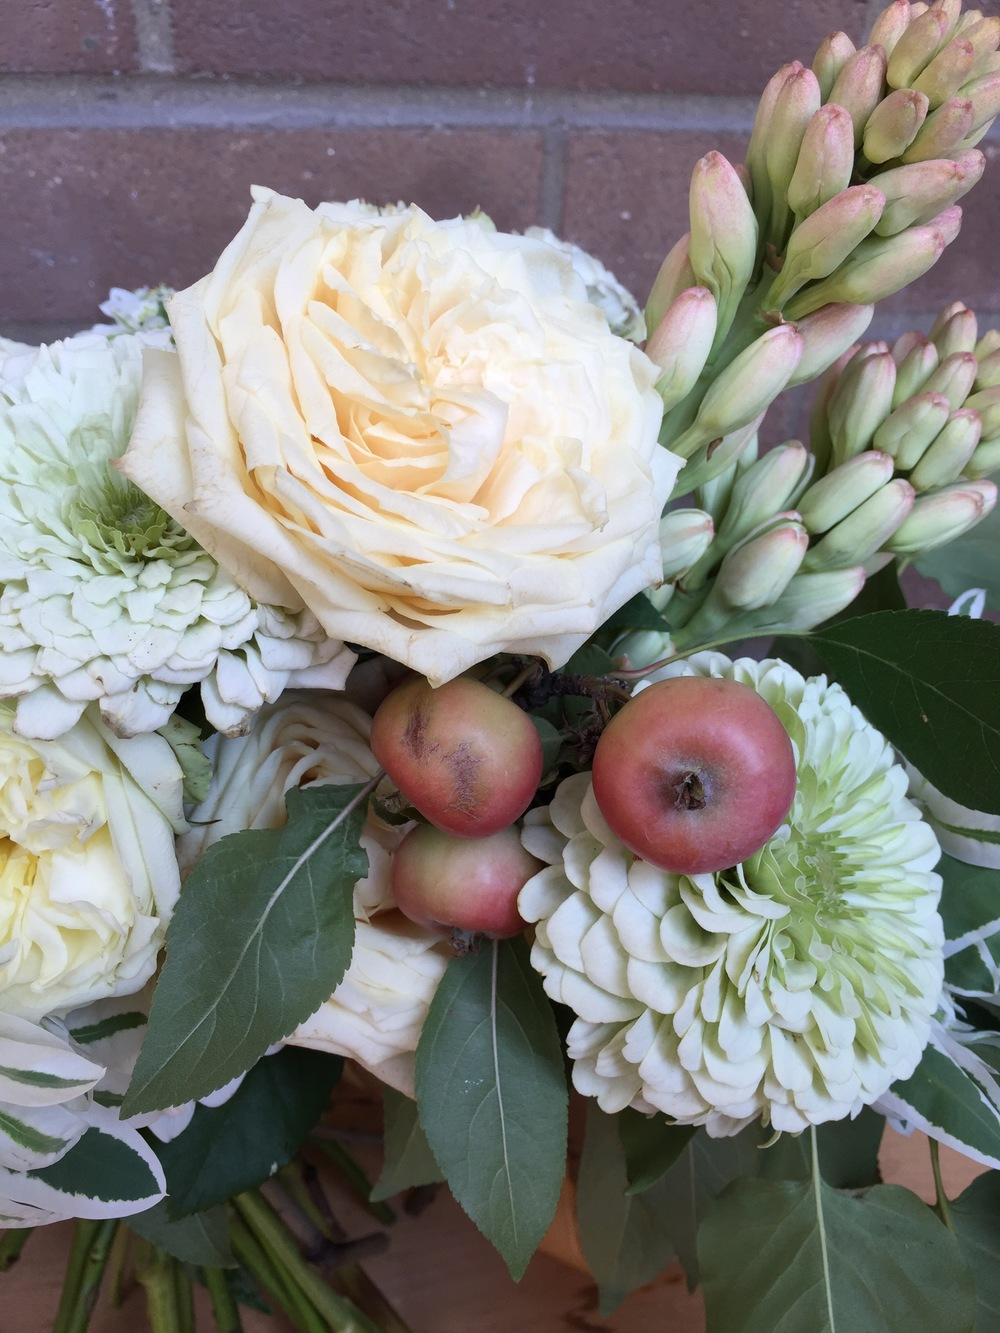 Crabapples!!! I love putting fruit in bouquets and arrangements!